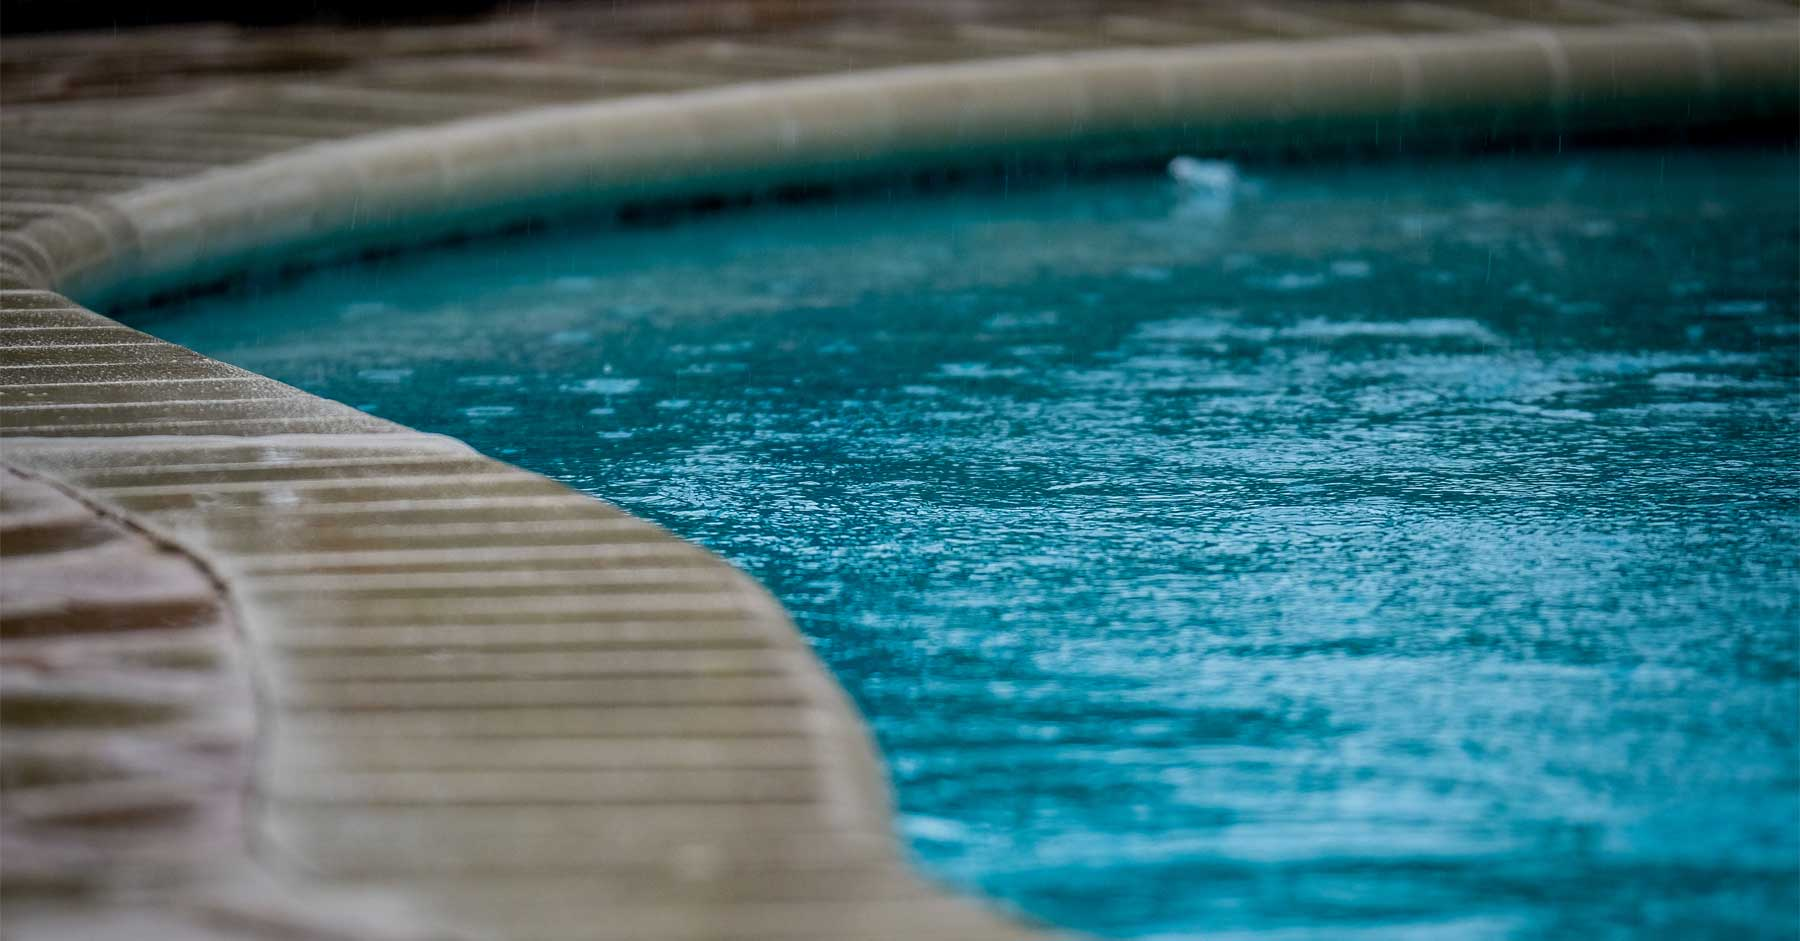 Winter Survival Kits for Your Pool